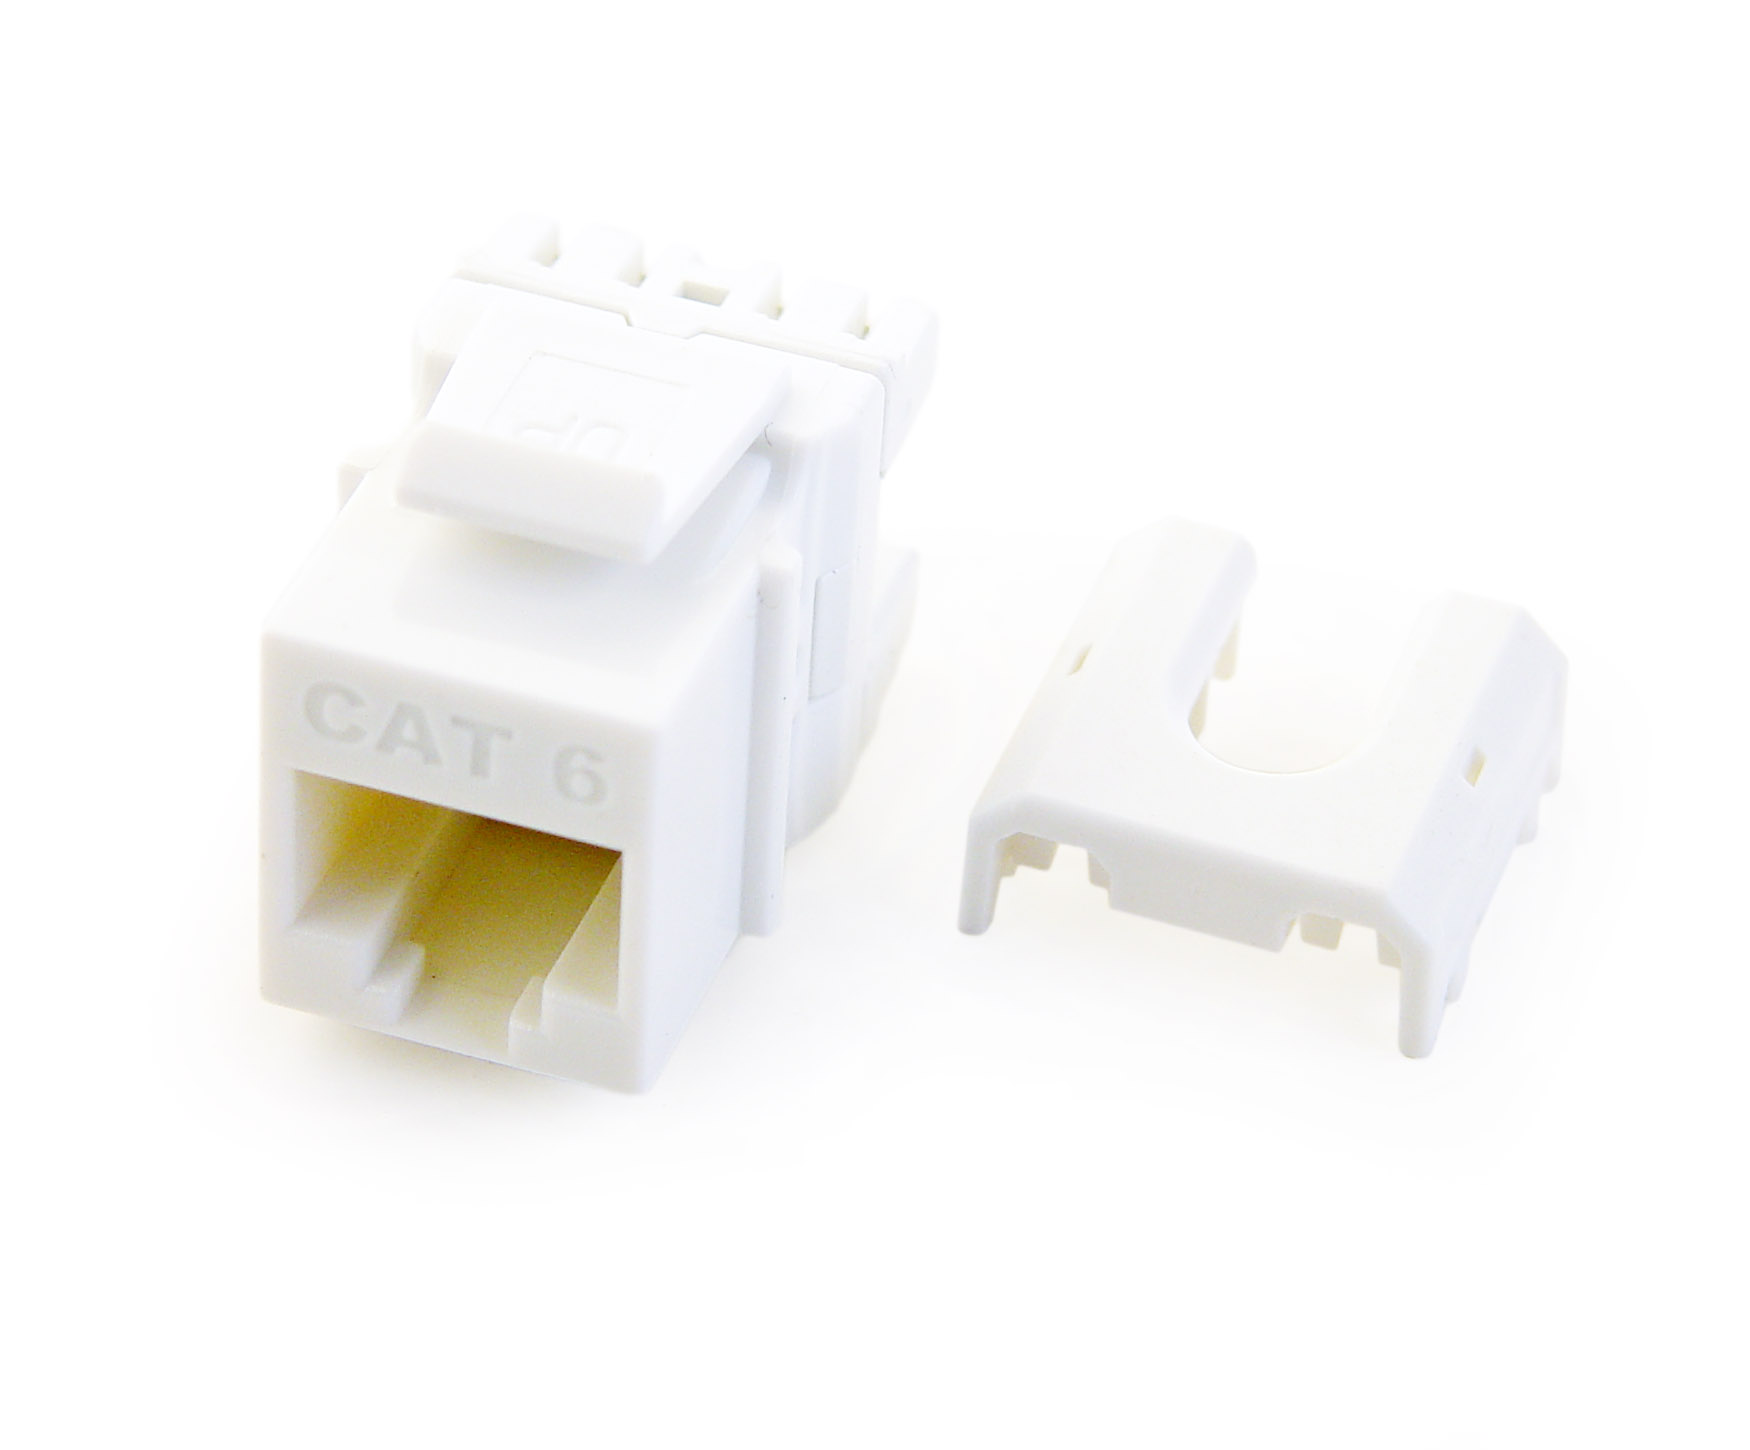 P&S W3476-WH-10 10 PK QC CAT 6 RJ45 INSERT WHITE (PRICED PER PACK OF 10) QTY OF 1 GETS A PACK OF 10